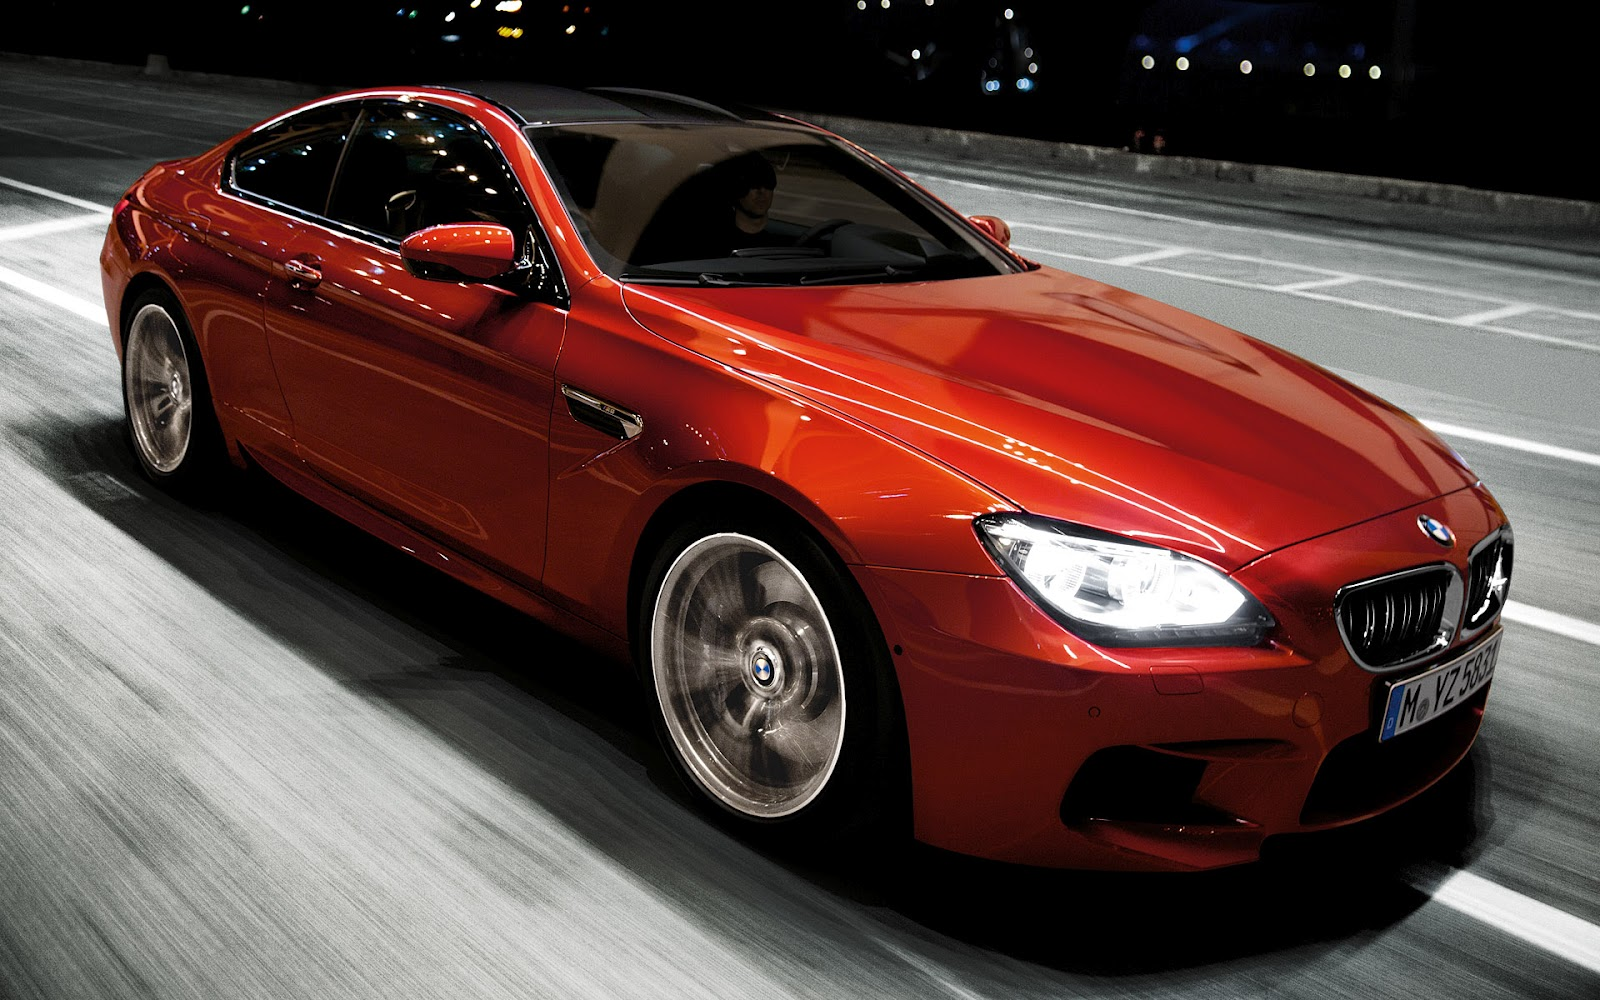 town country bmw mini markham blog 2013 bmw m6 wallpapers for you 2014 BMW 320I xDrive 2013 bmw m6 coupe and convertible wallpapers for those who don t already have it just click on one of the pictures to enlarge then right click on the